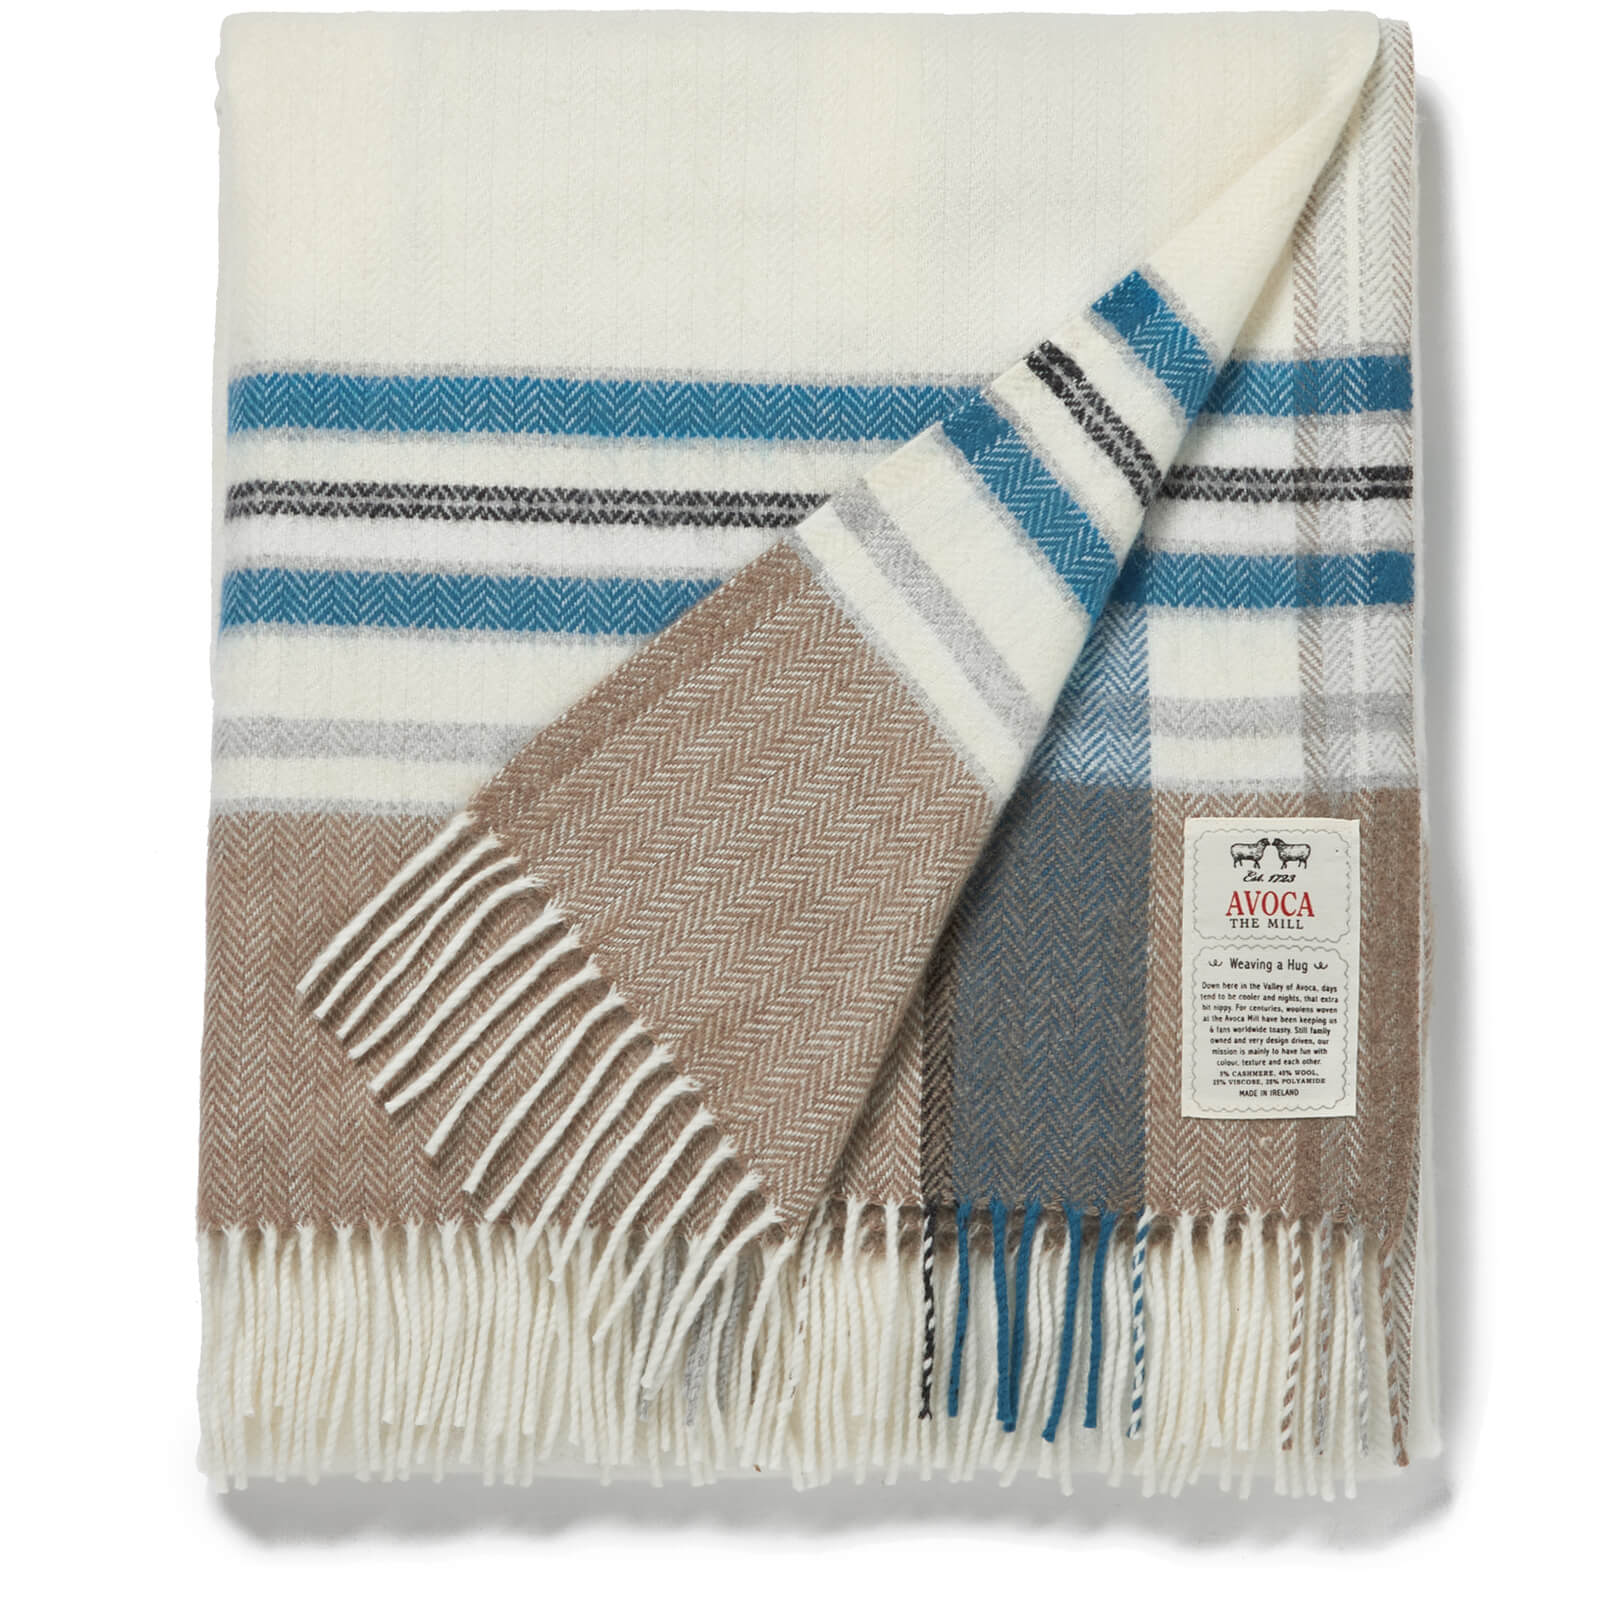 Avoca Cashmere Blend Arctic Throw - 142 x 183cm